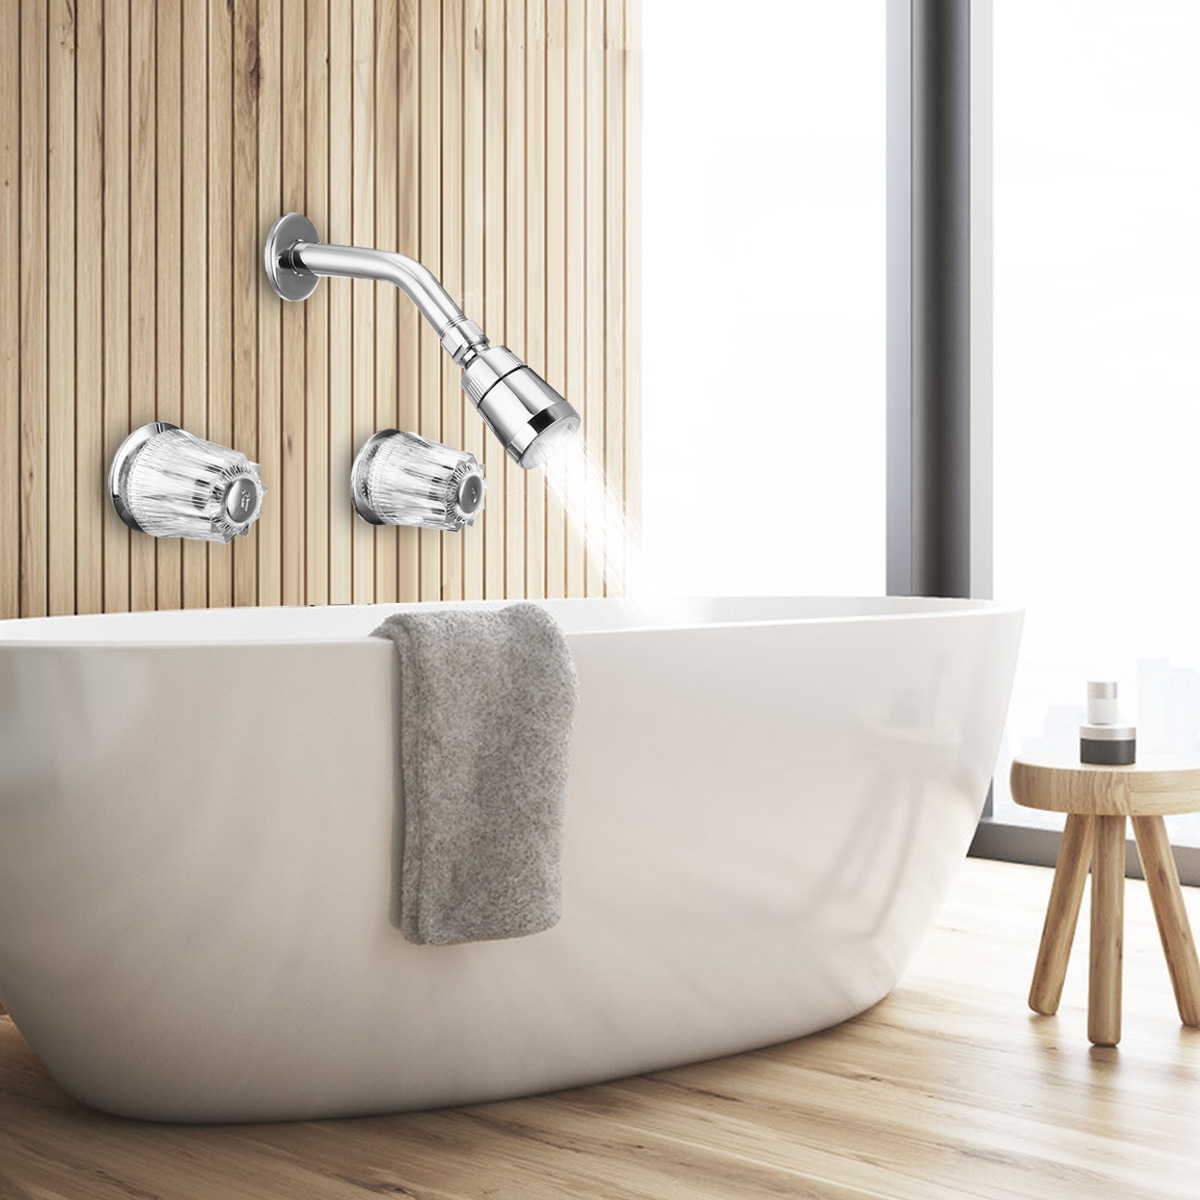 Xueqin Brass Double Crystal Handles Bathtub Basin Faucets Shower Faucet Spout Mixer Tap Cold And Hot Wall Mounted Two Holes